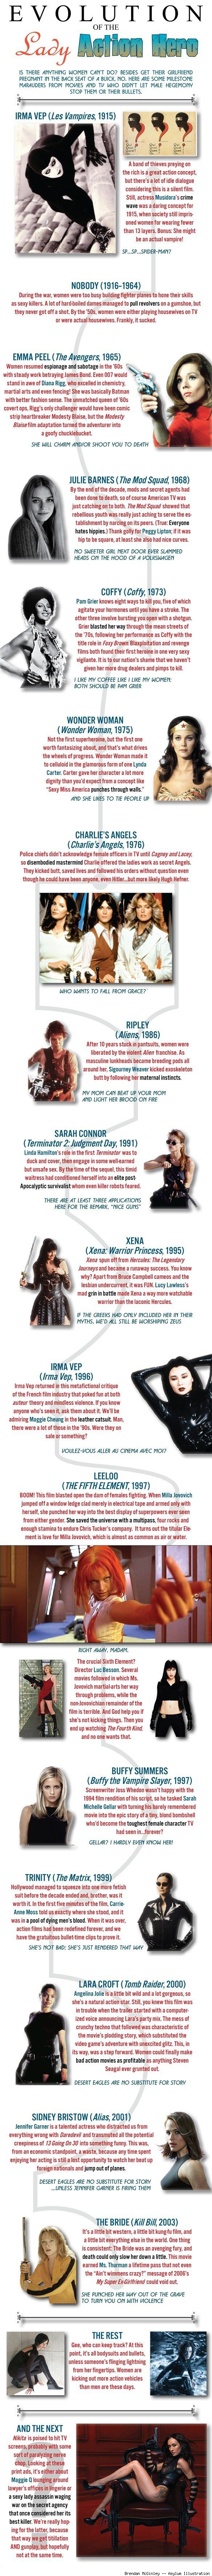 Evolution of the Female Action Hero